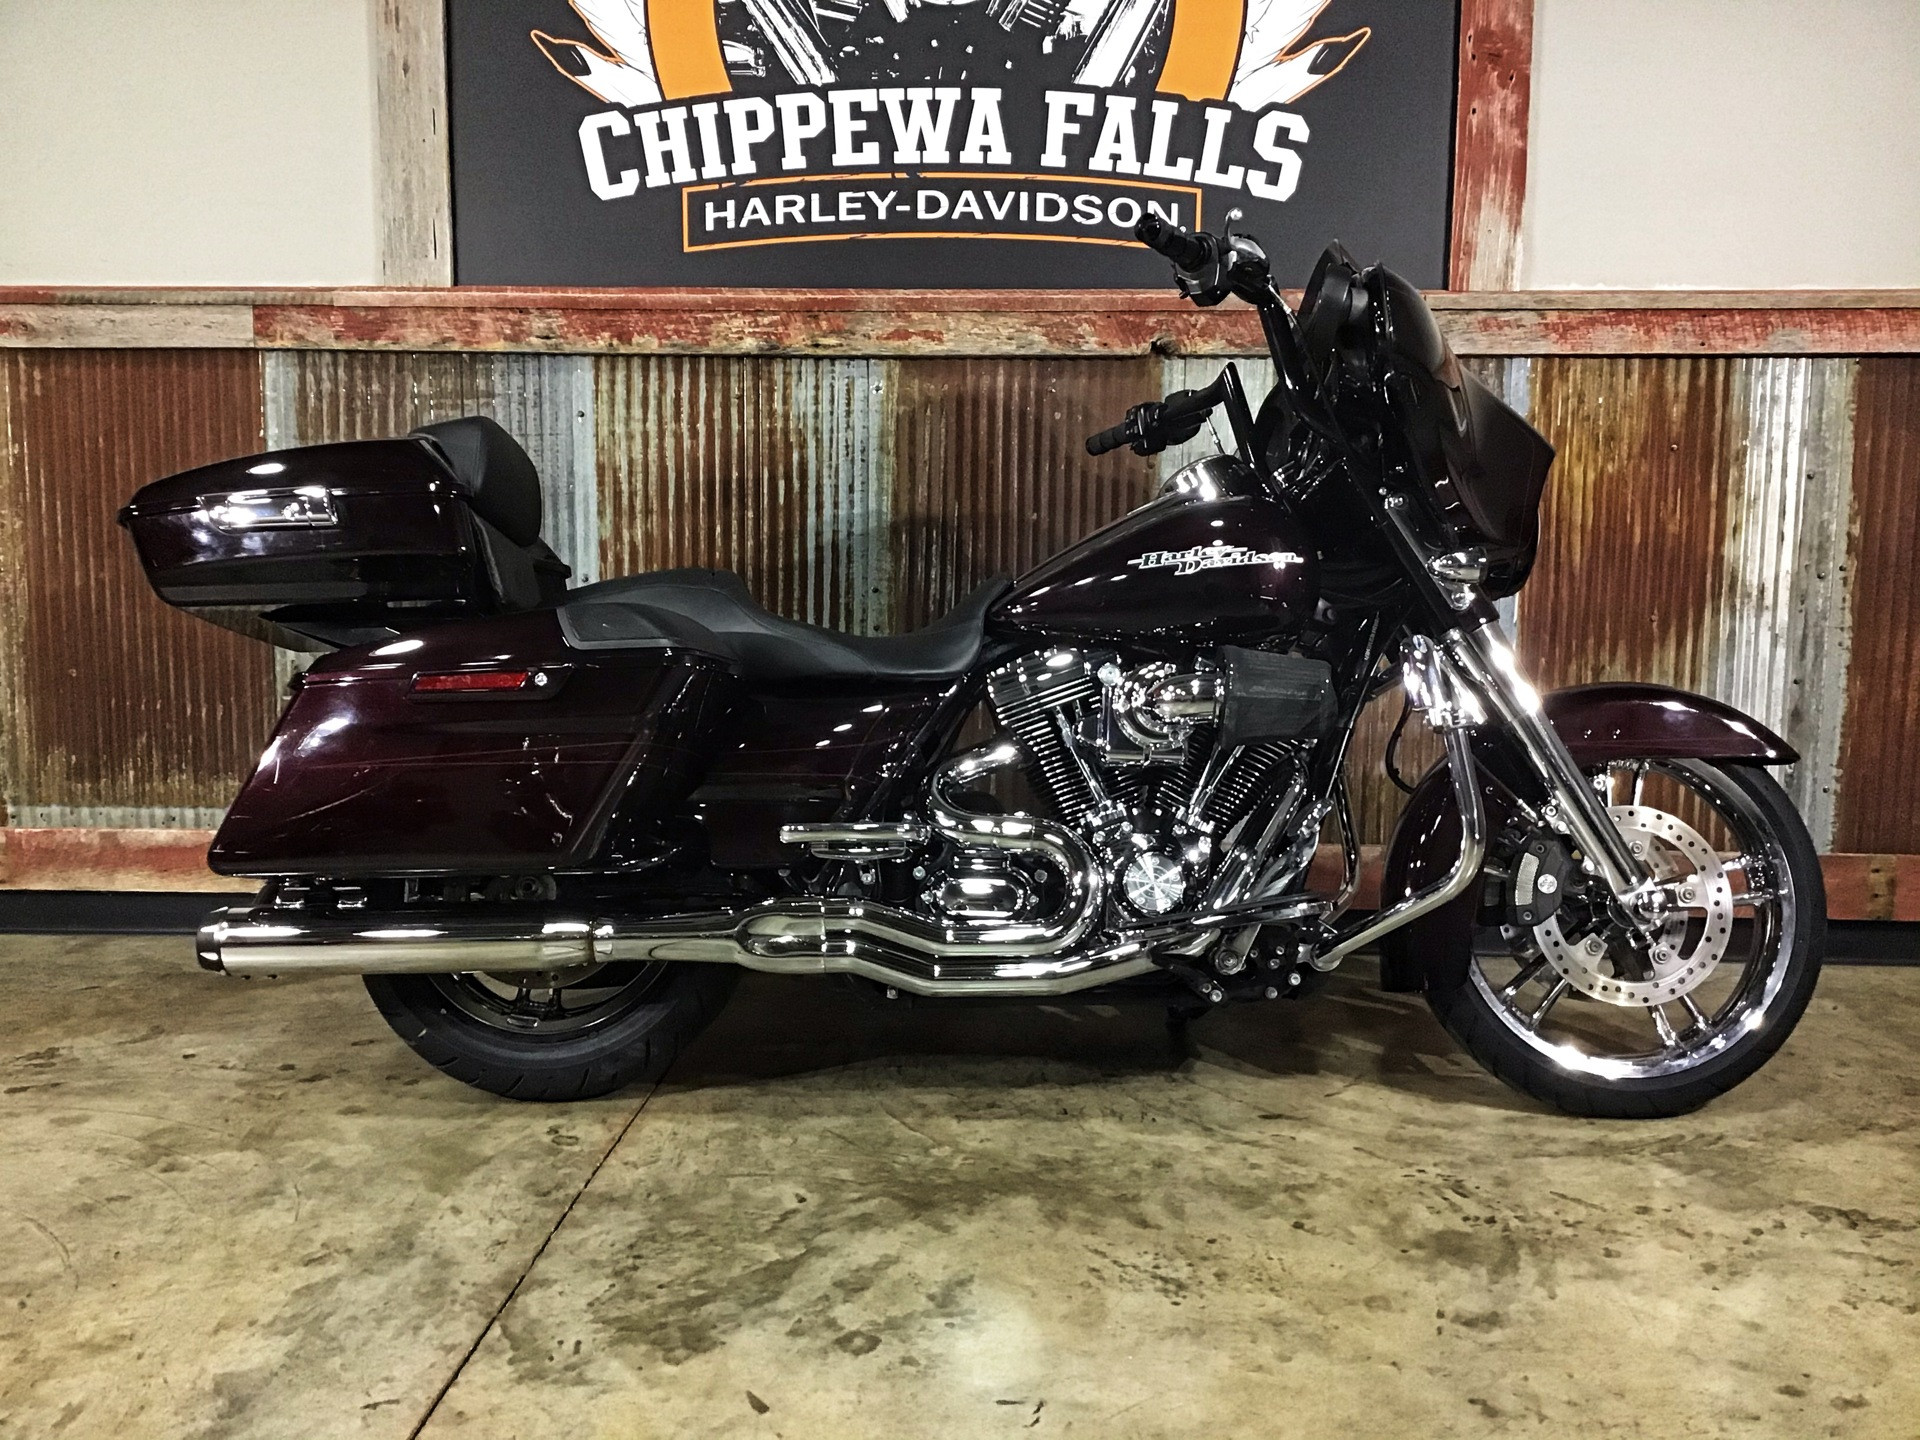 2014 Harley-Davidson Street Glide® Special in Chippewa Falls, Wisconsin - Photo 5